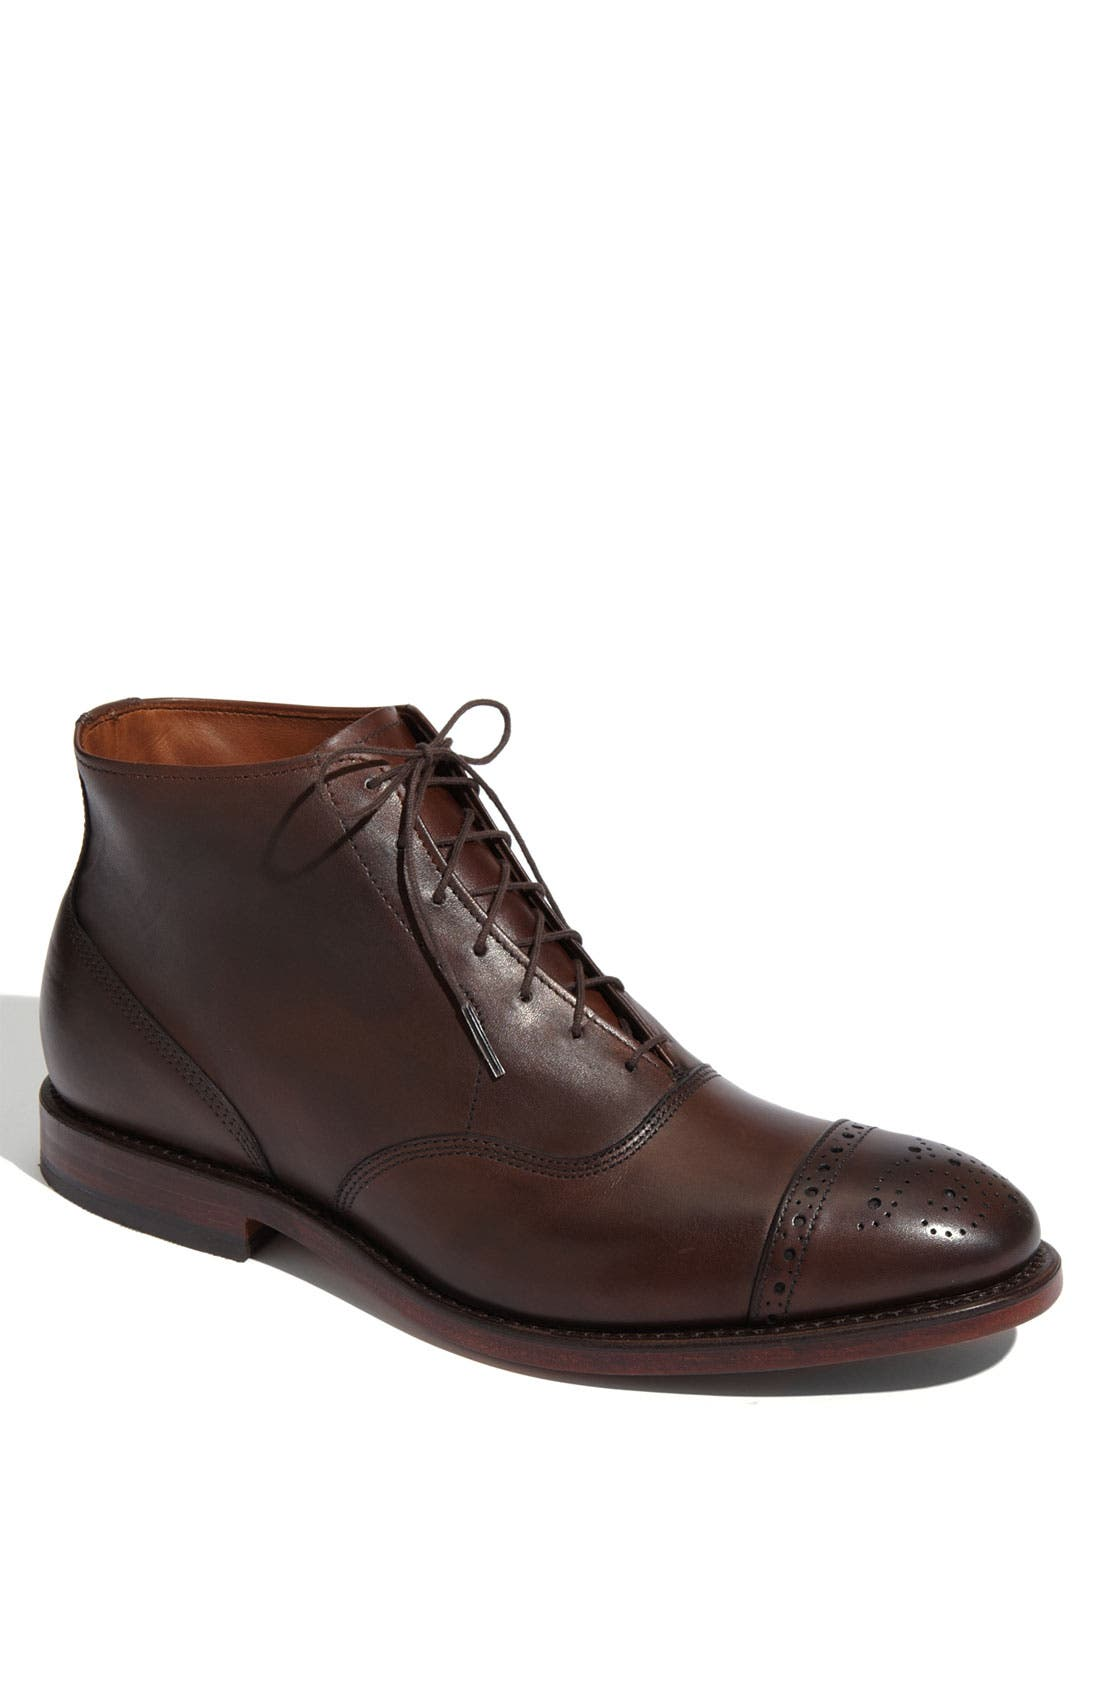 Alternate Image 1 Selected - Allen Edmonds 'Fifth Street' Boot (Men)